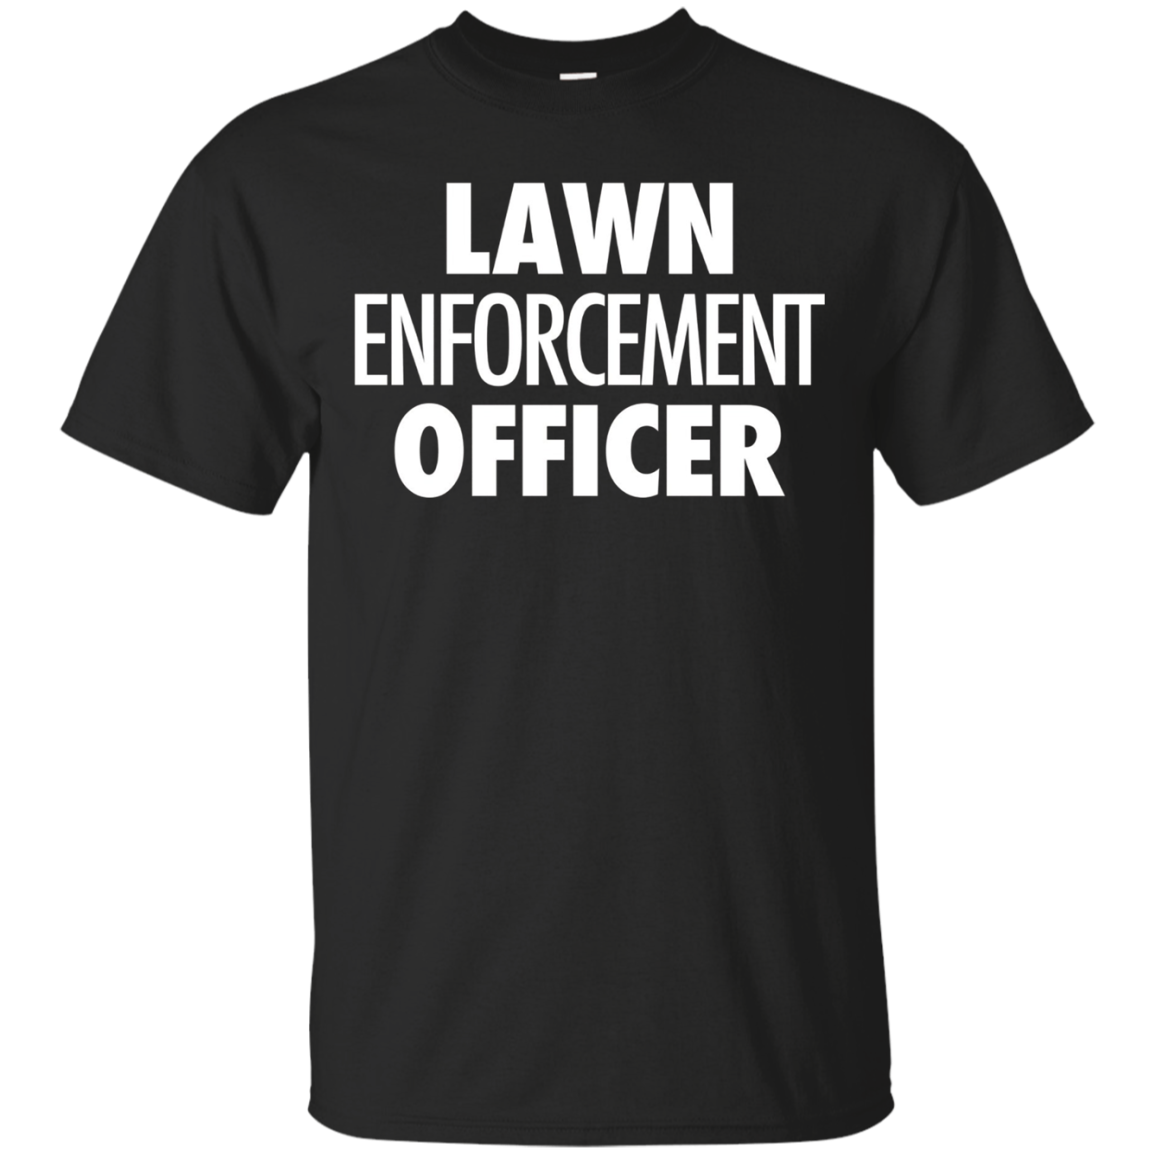 Lawn Enforcement Officer - Funny Gardening Quote T-Shirt